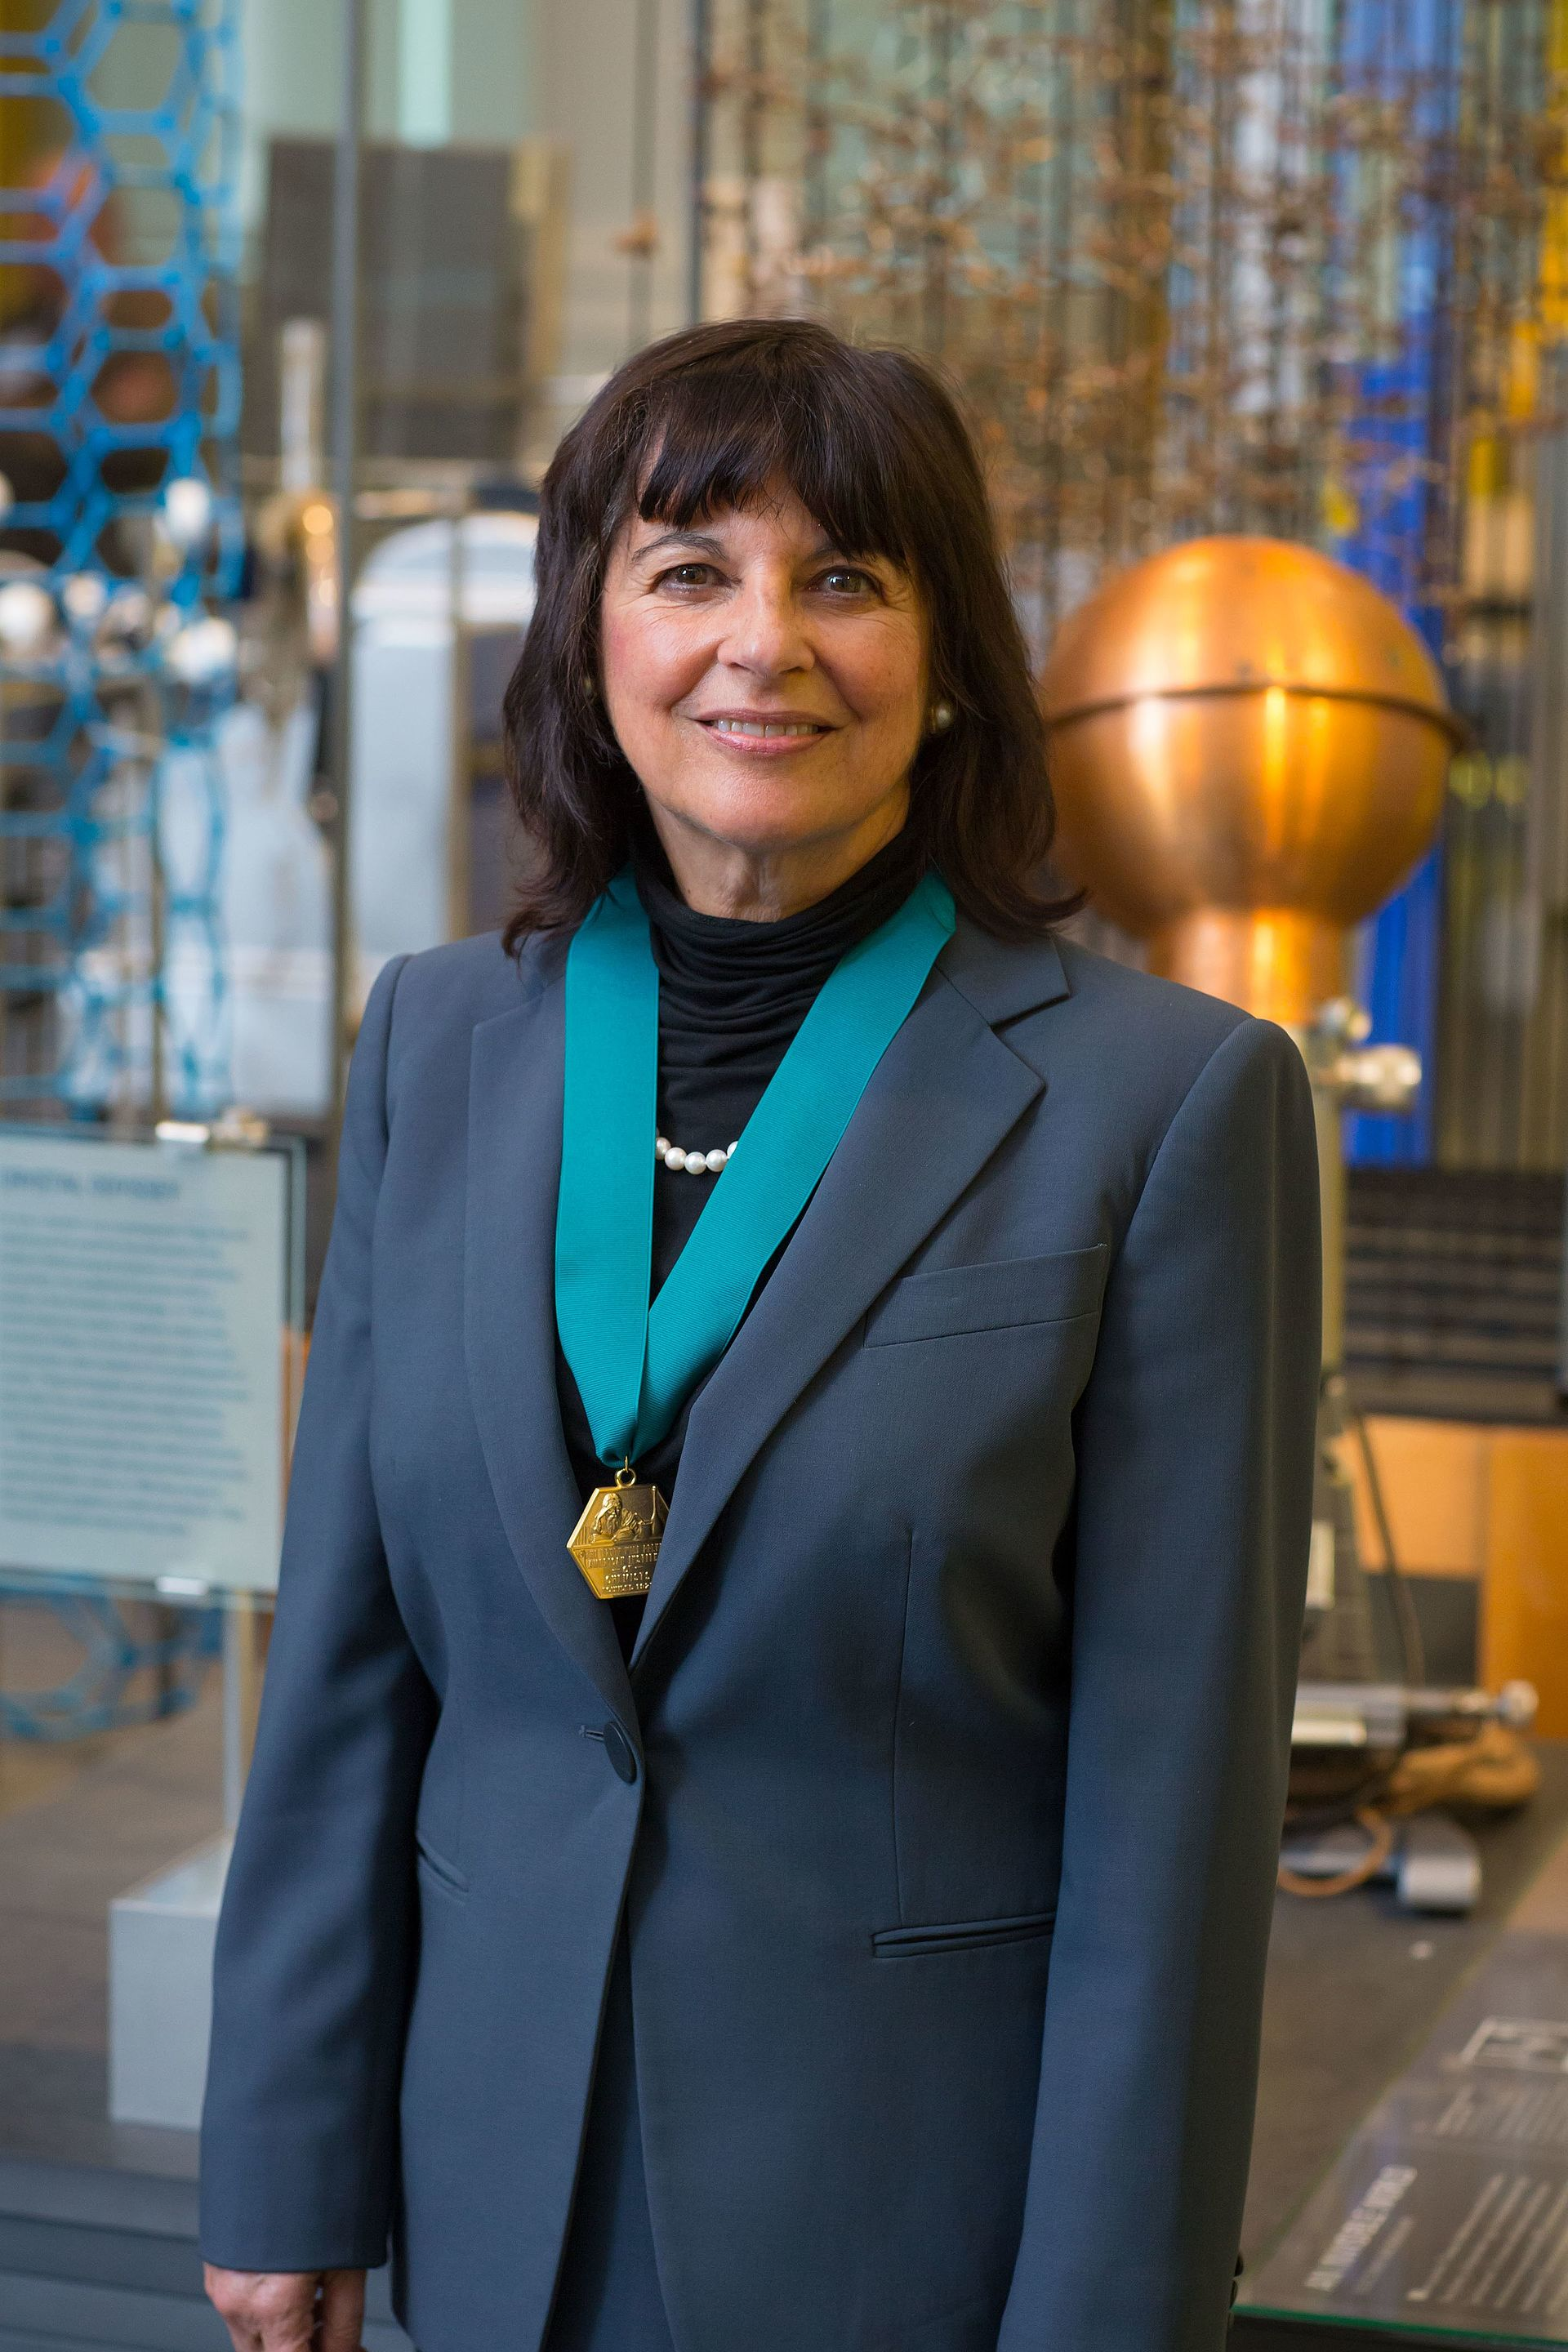 Ny Institute Of Technology >> Jacqueline Barton - Wikipedia